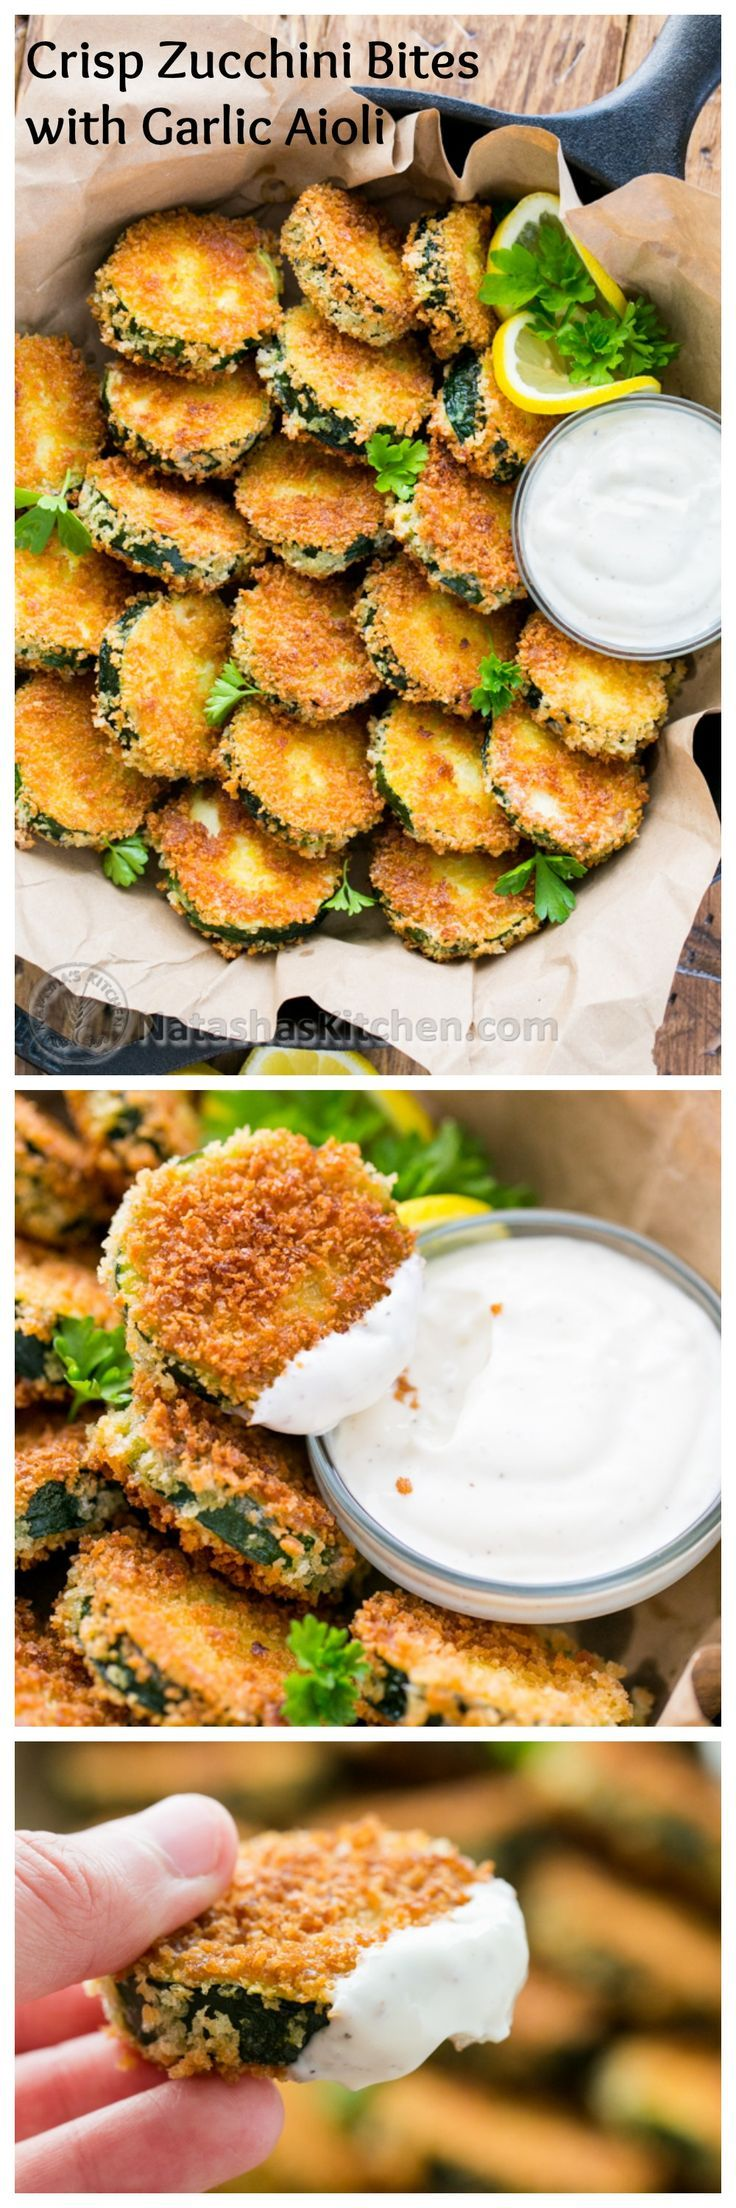 Crisp Zucchini Bites with Garlic Aioli Dip | Crunchy and Savory | Great Holiday Appetizer @natashaskitchen